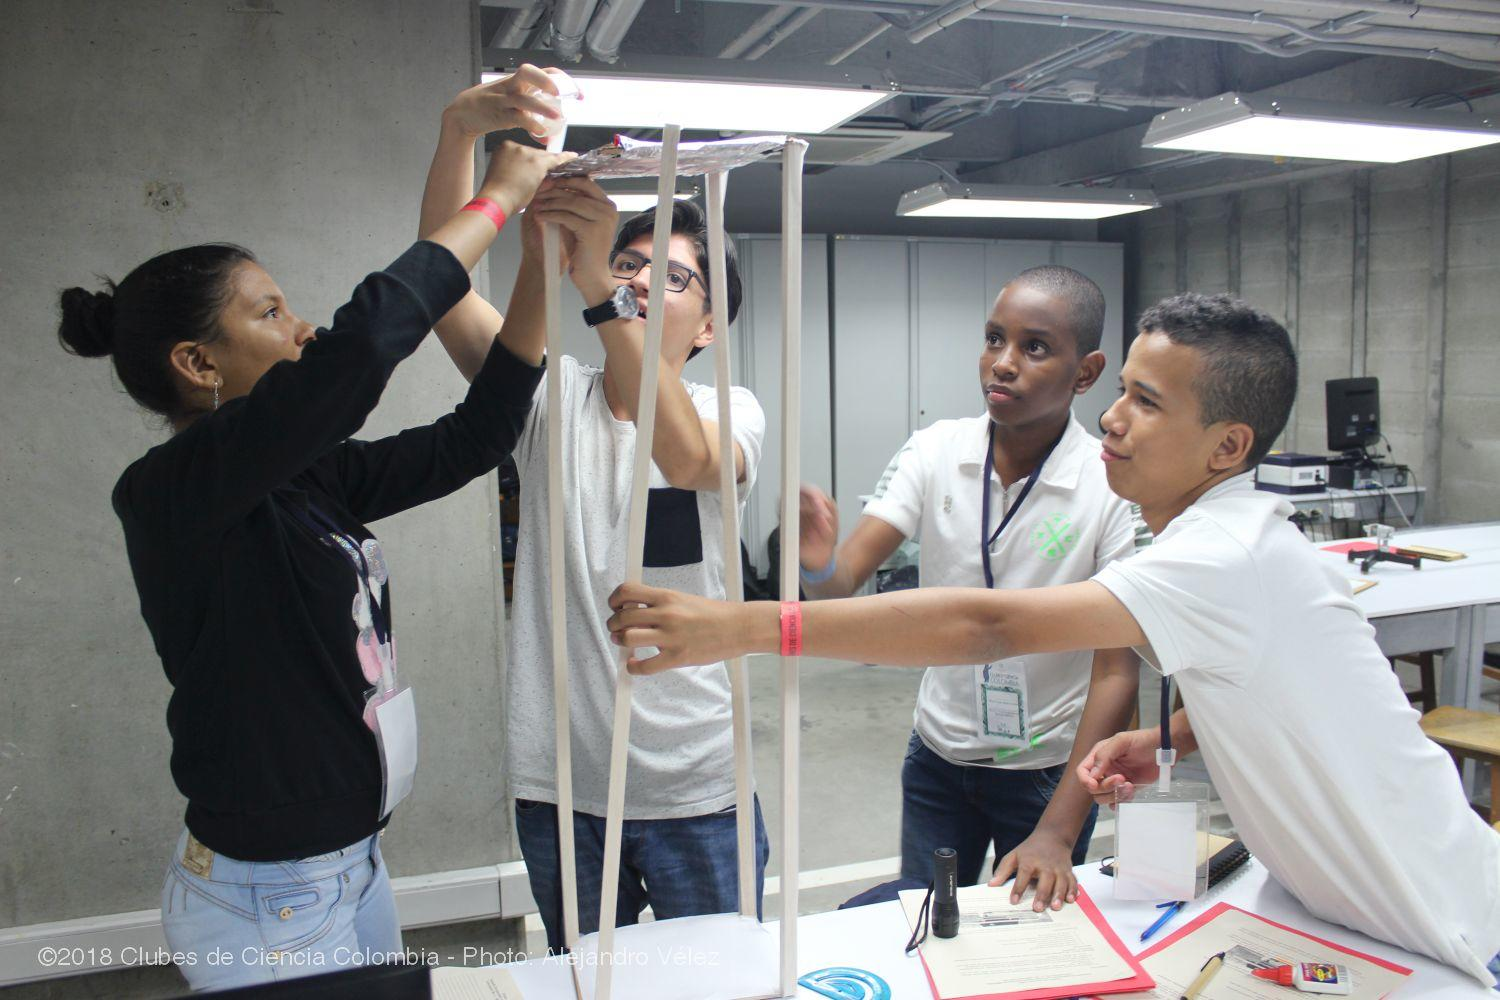 tudents to build their own Solar telescopes and measure the diameter of the Sun.